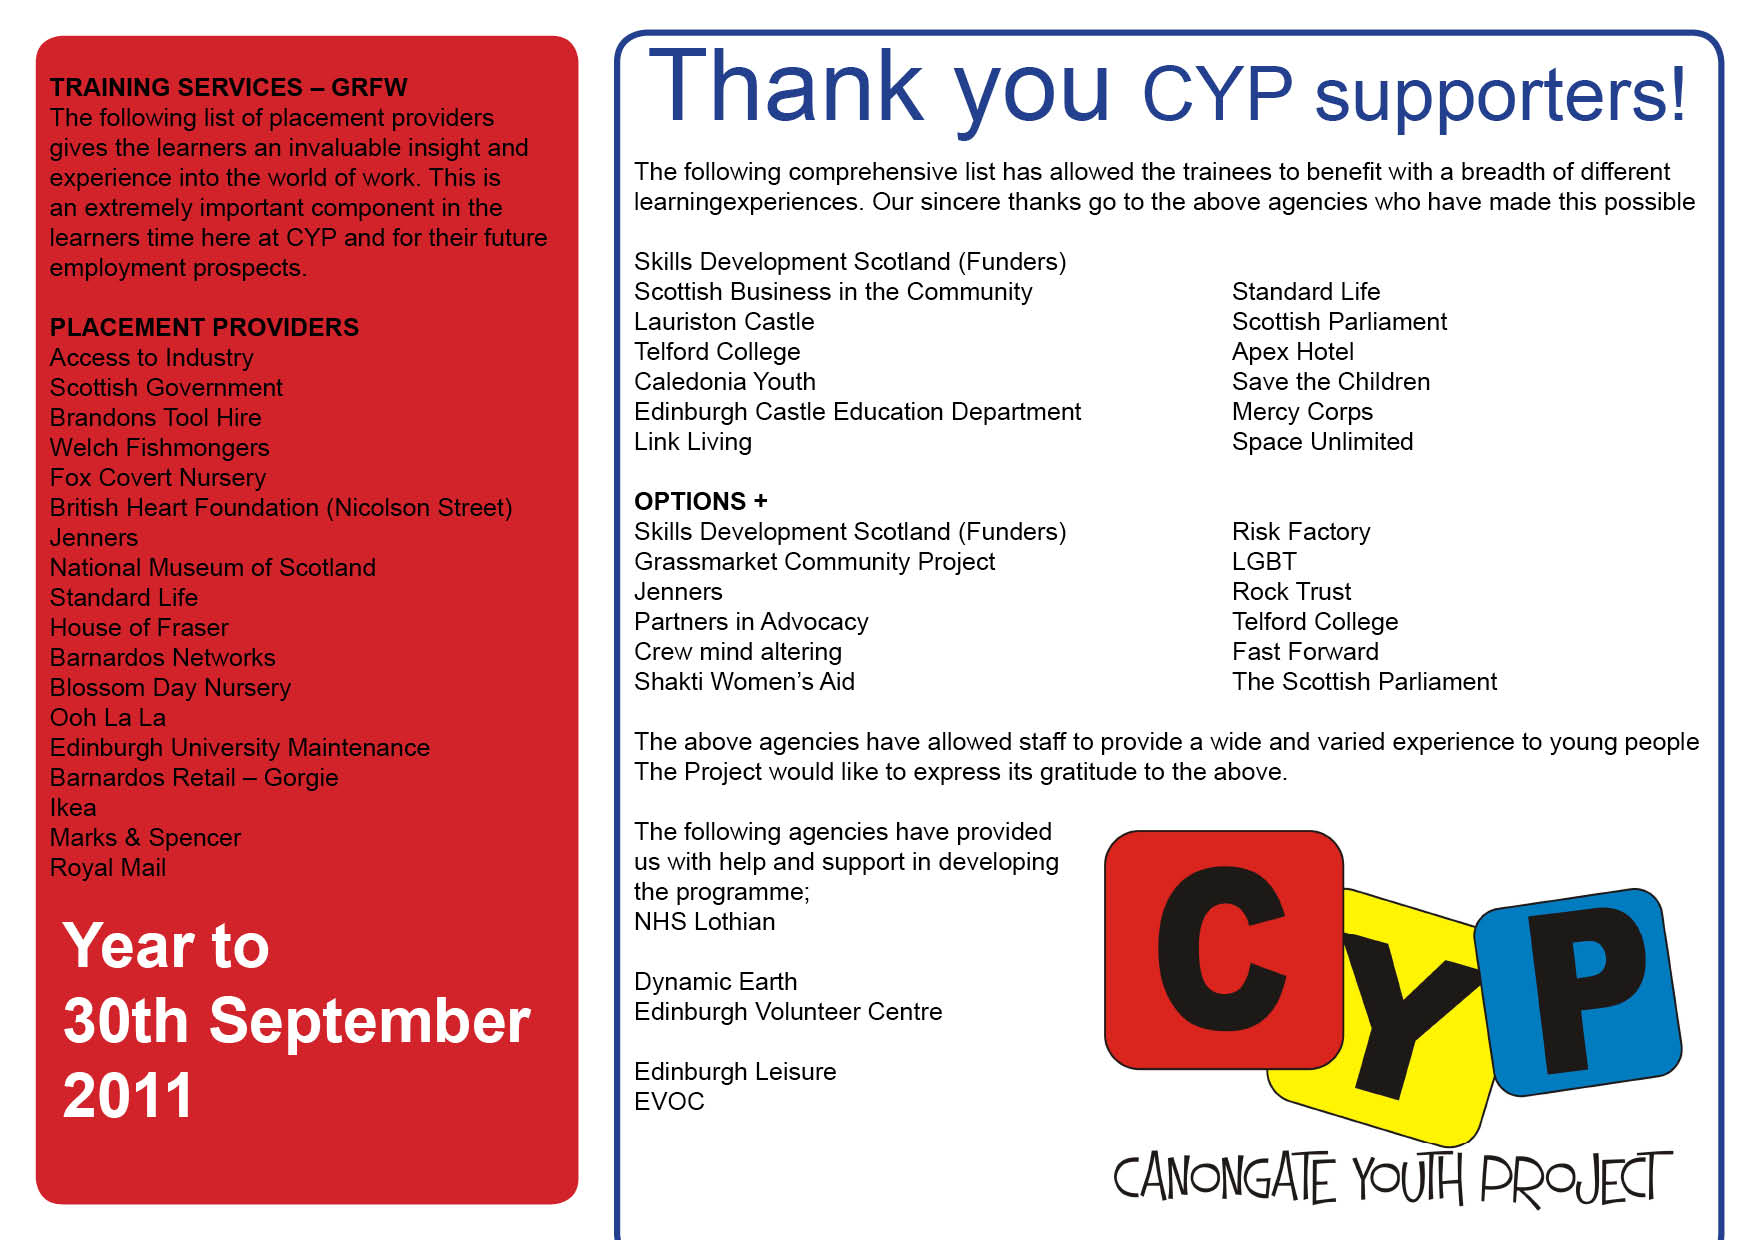 cyp newsletter edited single page high res18.jpg